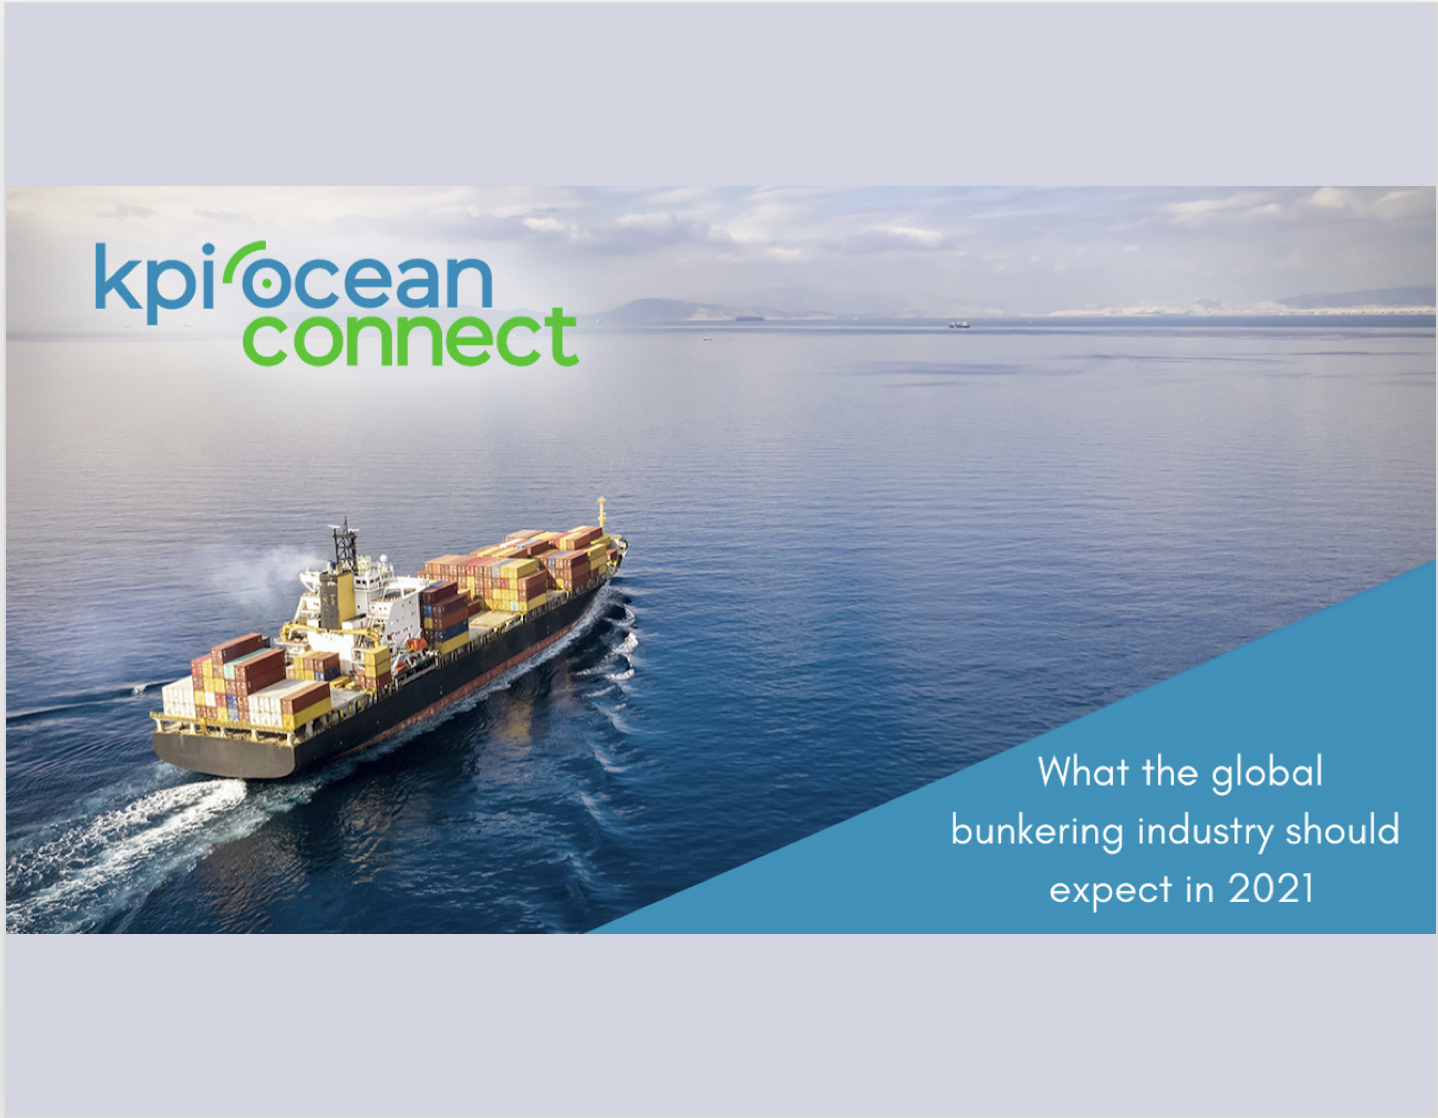 KPI OceanConnect: What the global bunkering industry should expect in 2021